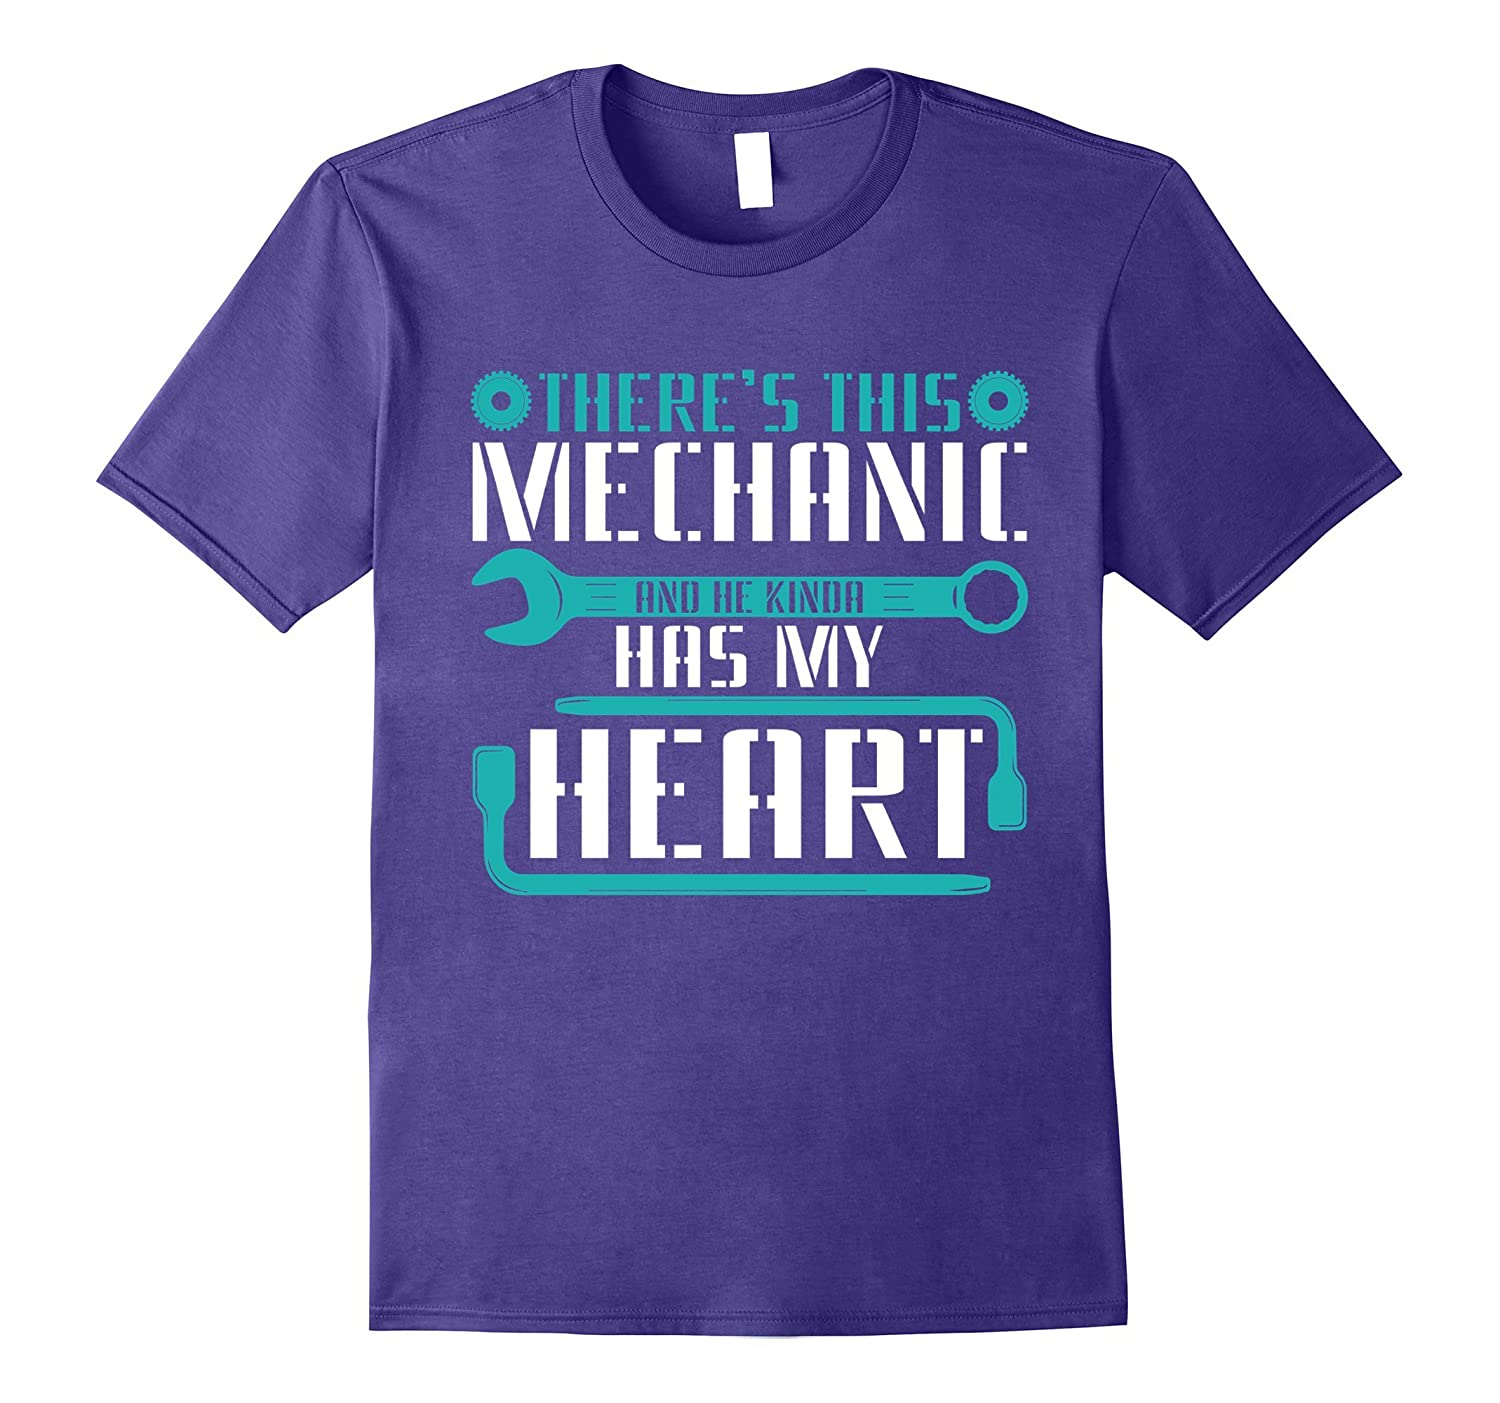 Theres This Mechanic And He Kinda Has My Heart T-shirt-TD